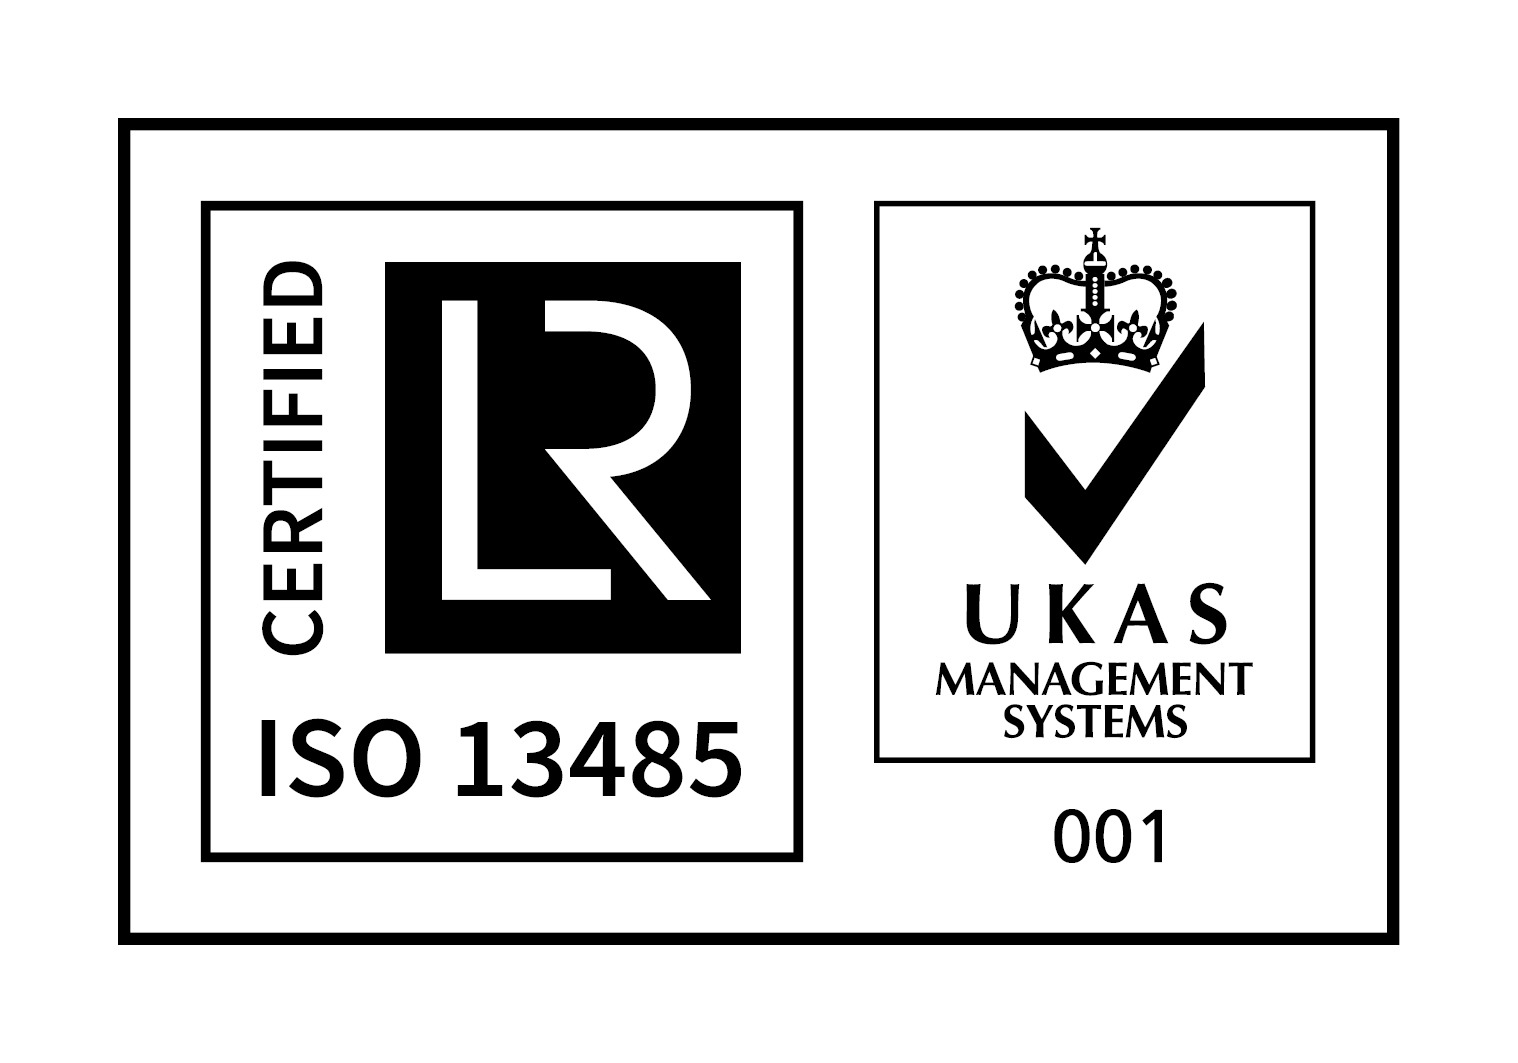 UKAS AND ISO 13485 - RGB